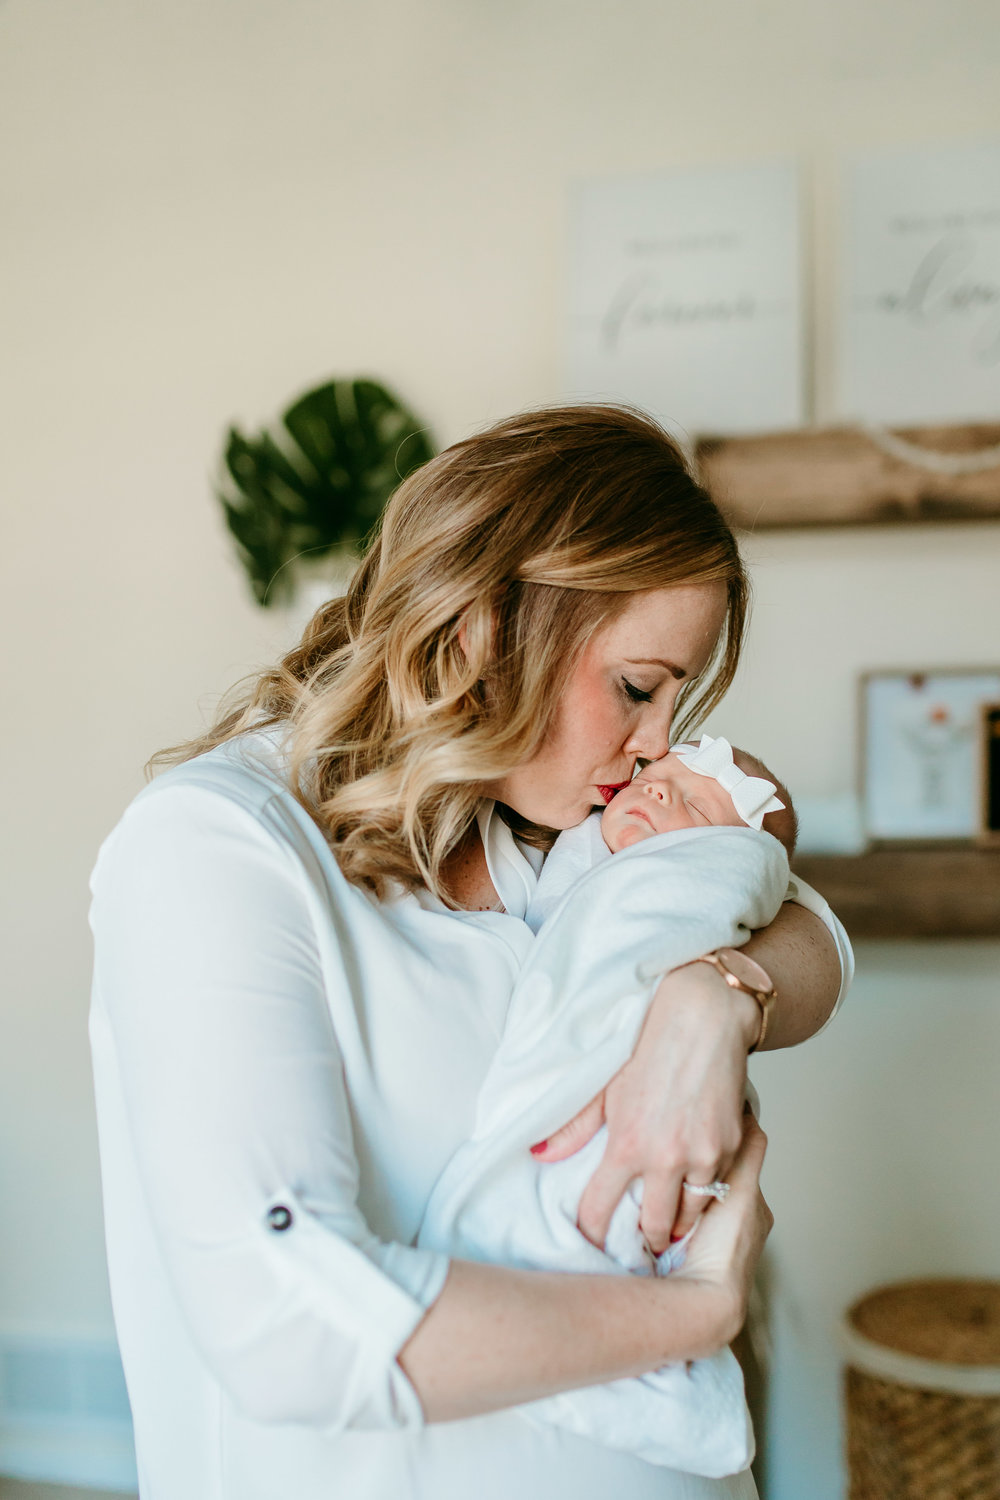 Lauren_gripka_photography_lifestyle_newborn_session_basehor_kansas-7.jpg